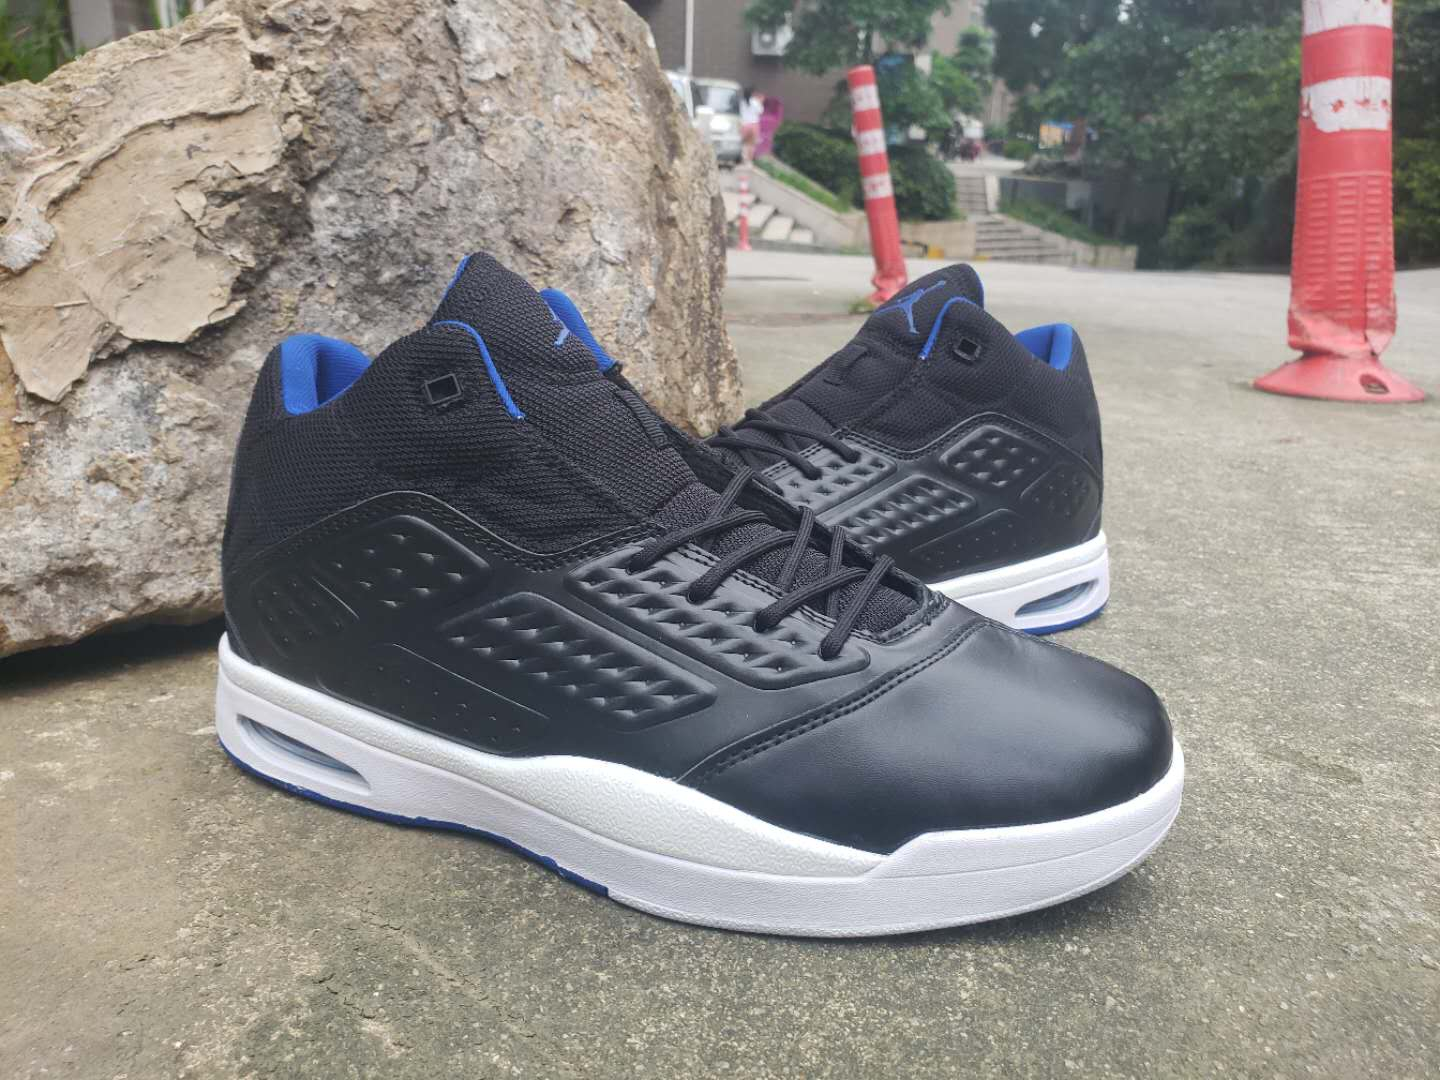 Jordan 2019 New School Black White Blue Shoes